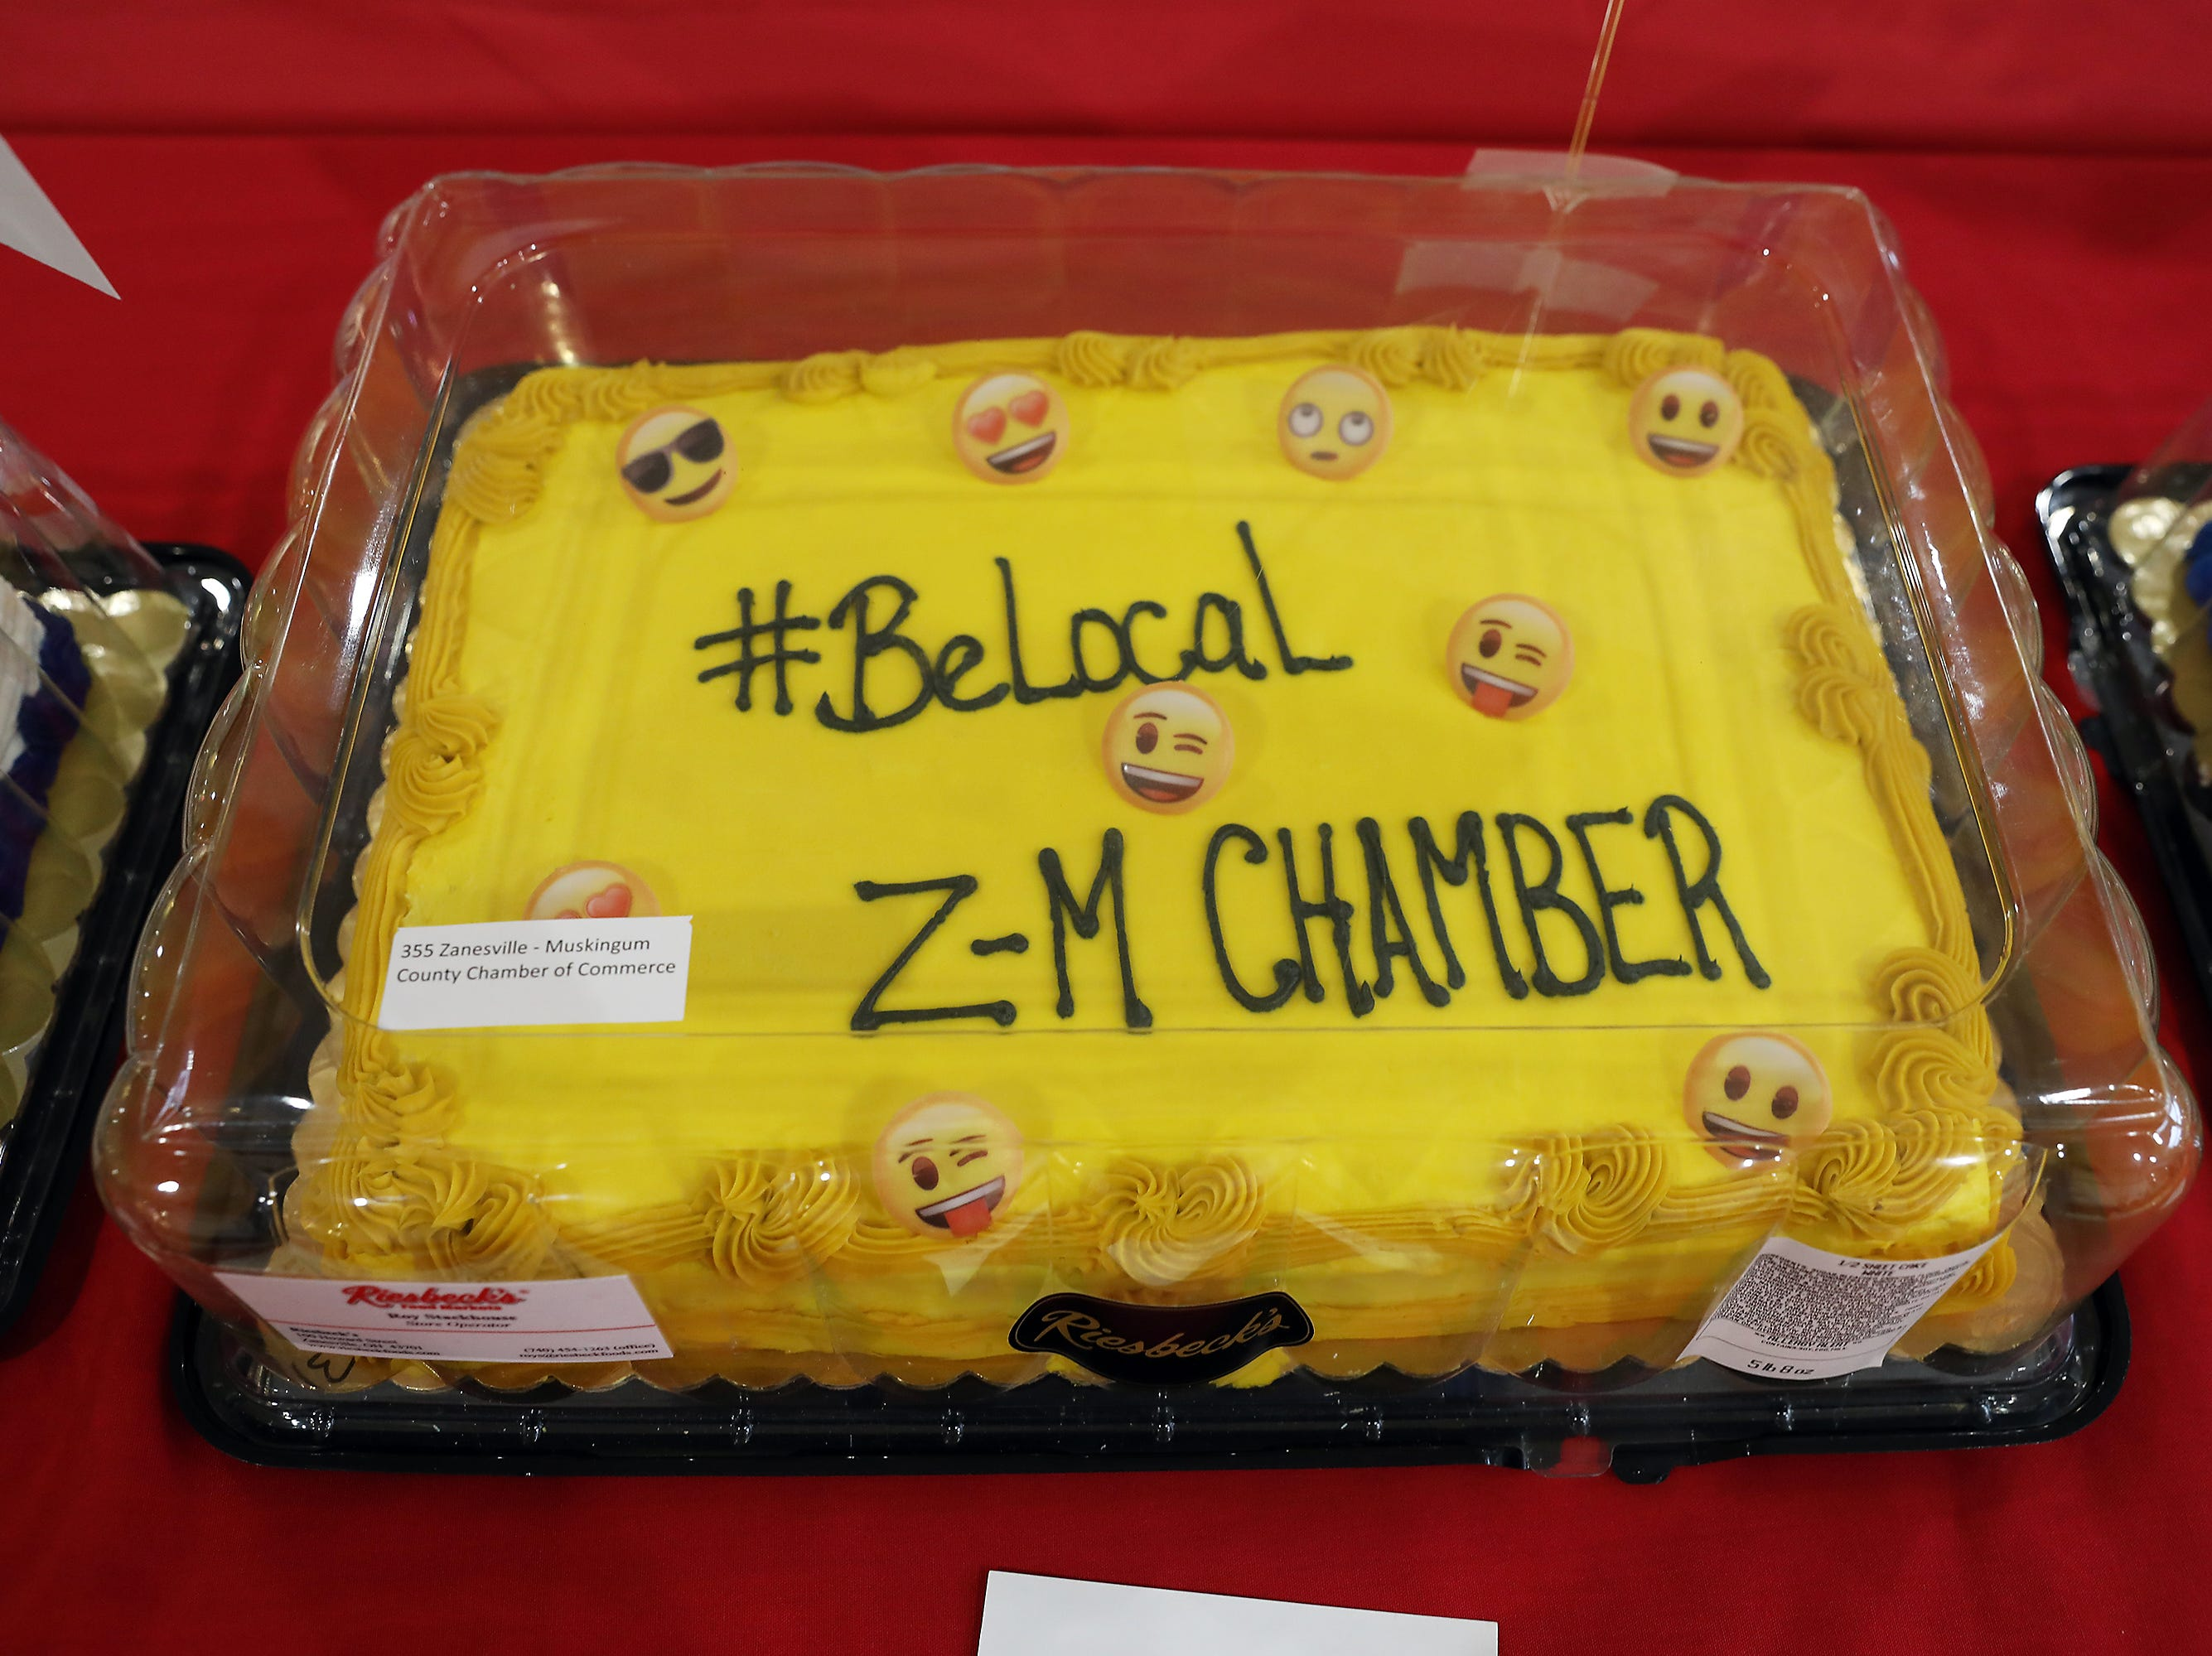 3:15 P.M. Friday cake 355 Zanesville - Muskingum County Chamber of Commerce - 25 #BeLocal post cards,  Visit Zanesville T-shirt and hat, Lorena ride for 2, admission for 2 to Zanesville Museum of Art, $10 gift cards to Adonetto's, Creno's, Donato's, Maxwell's, Olive Garden, Picnic Pizza, Roosters, Russo's Wood Fired, The Barn and Weasel Boy Brewing